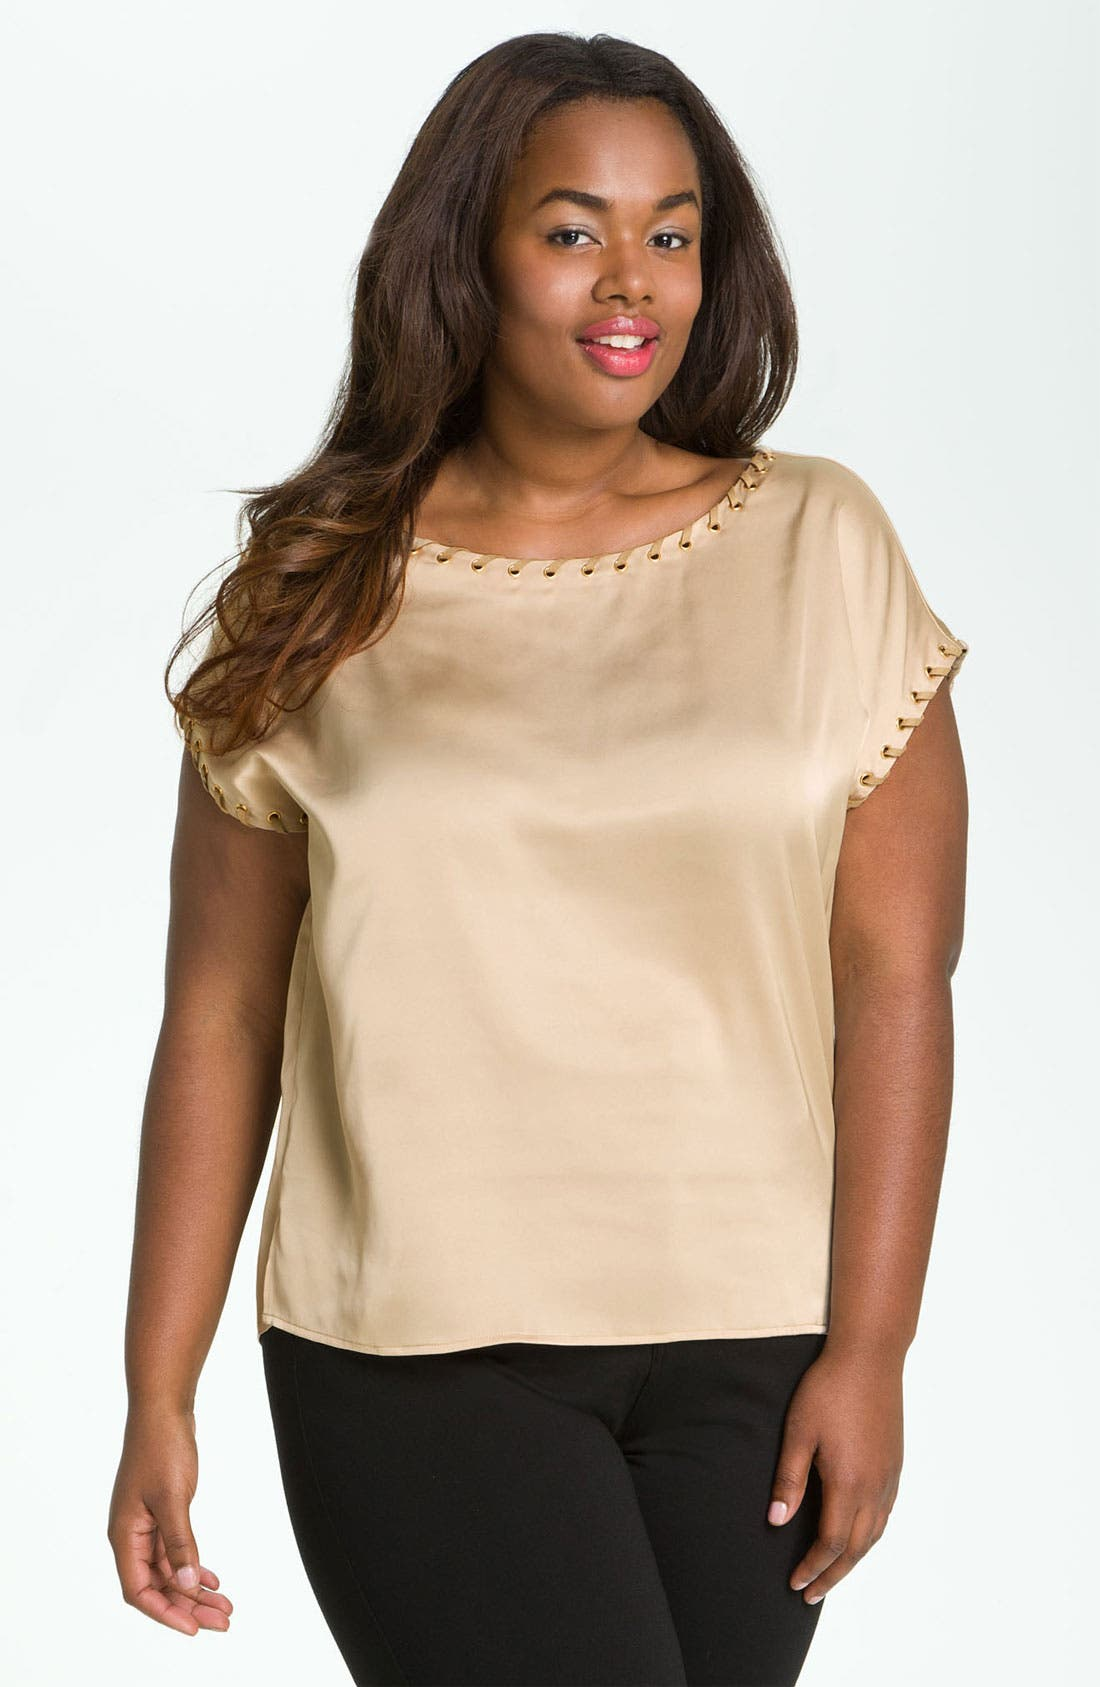 Alternate Image 1 Selected - Vince Camuto Grommet Trim Top (Plus)